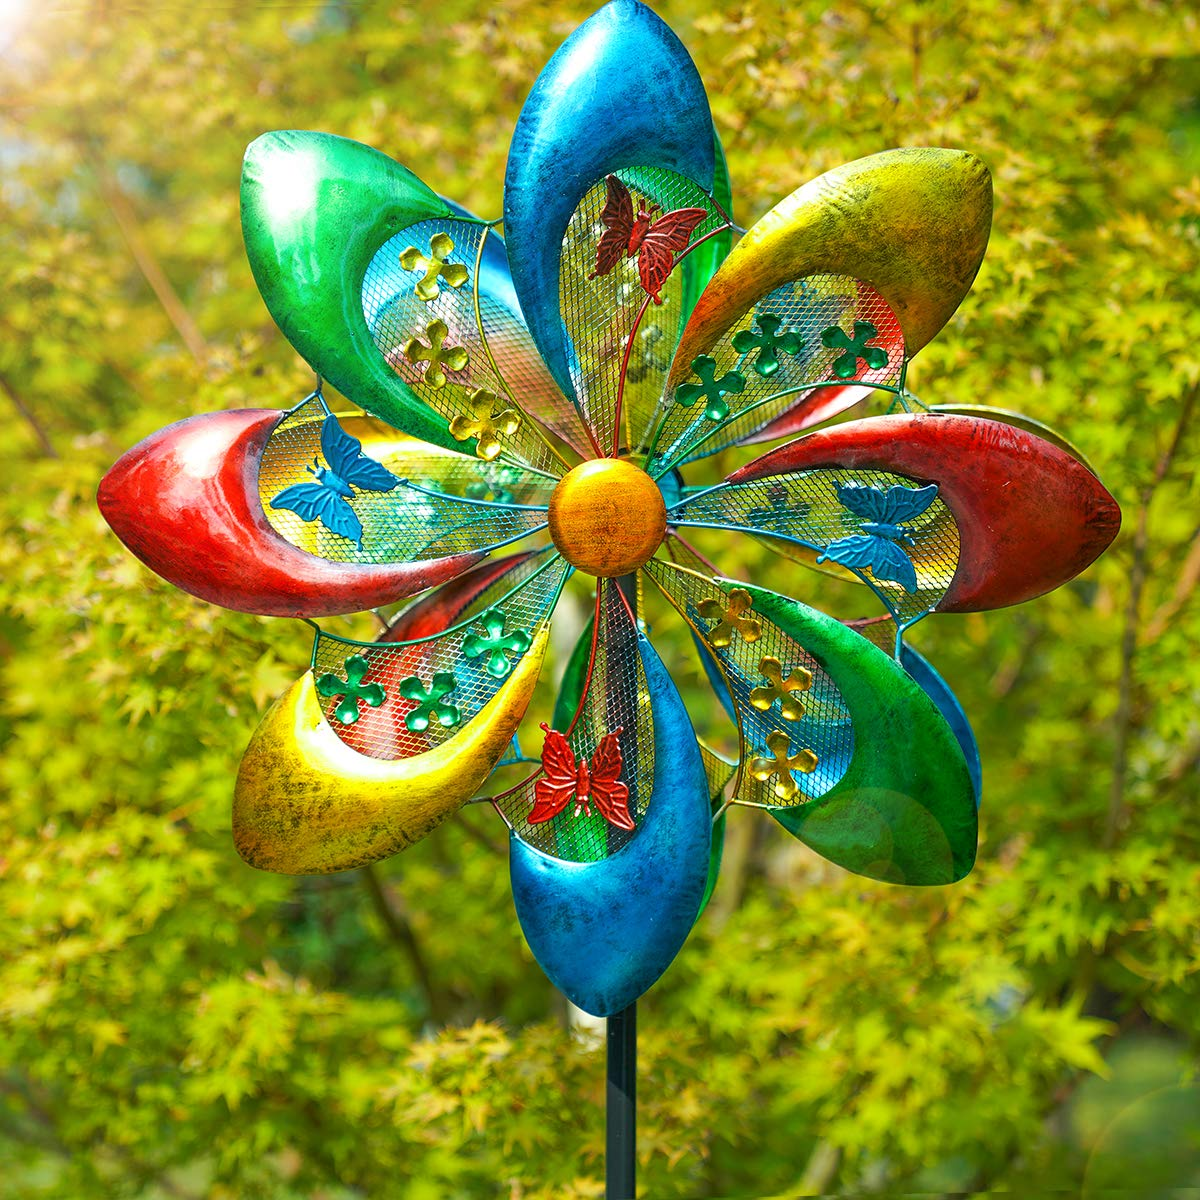 Sowsun Spinner Colorful Sculpture Decoration